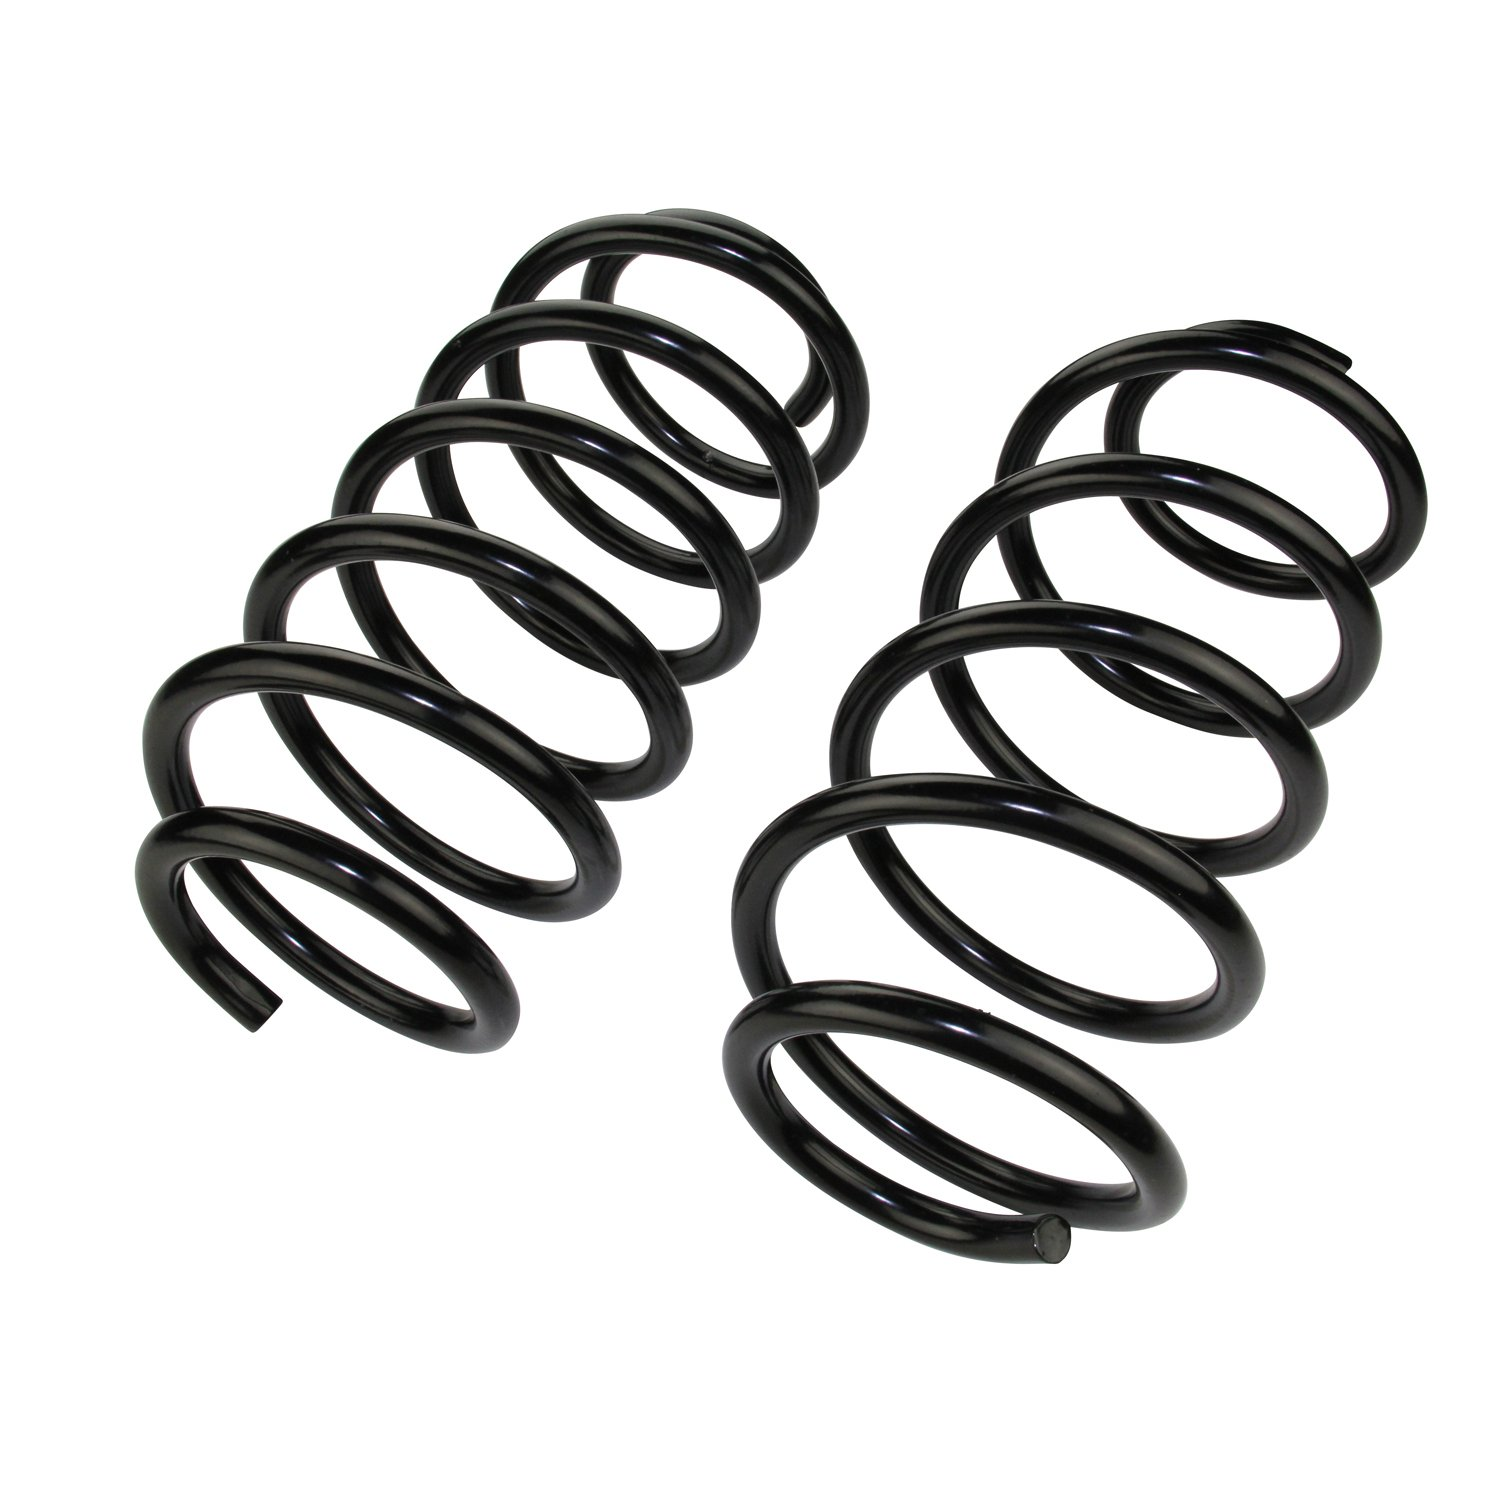 Moog 81490 Coil Spring Set for Jeep Compass, Patriot